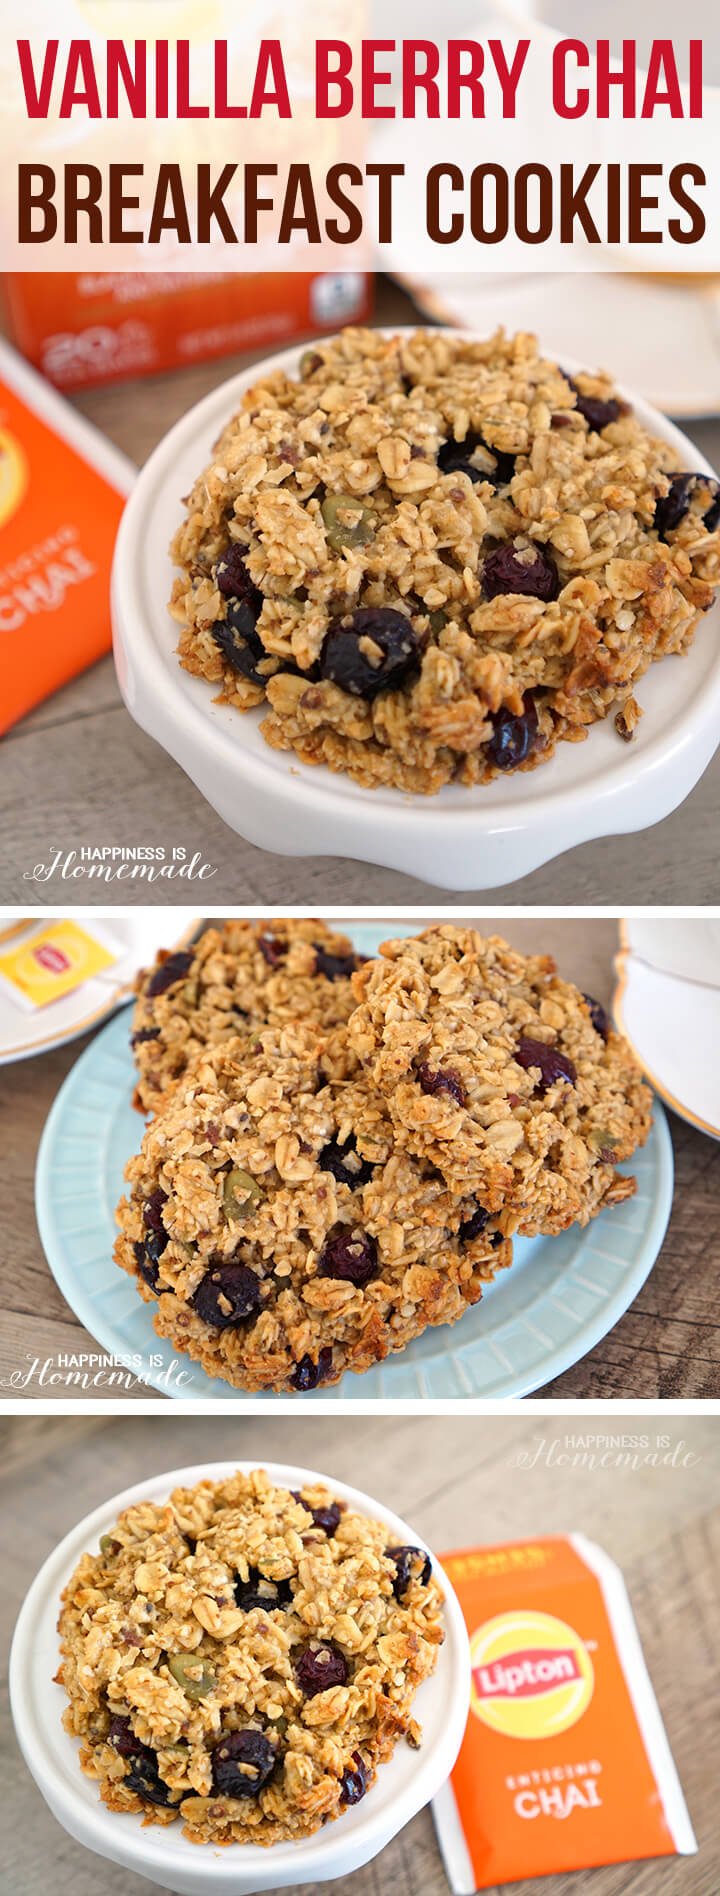 Vanilla Berry Chai Breakfast Cookies are a Healthy On-the-Go Meal